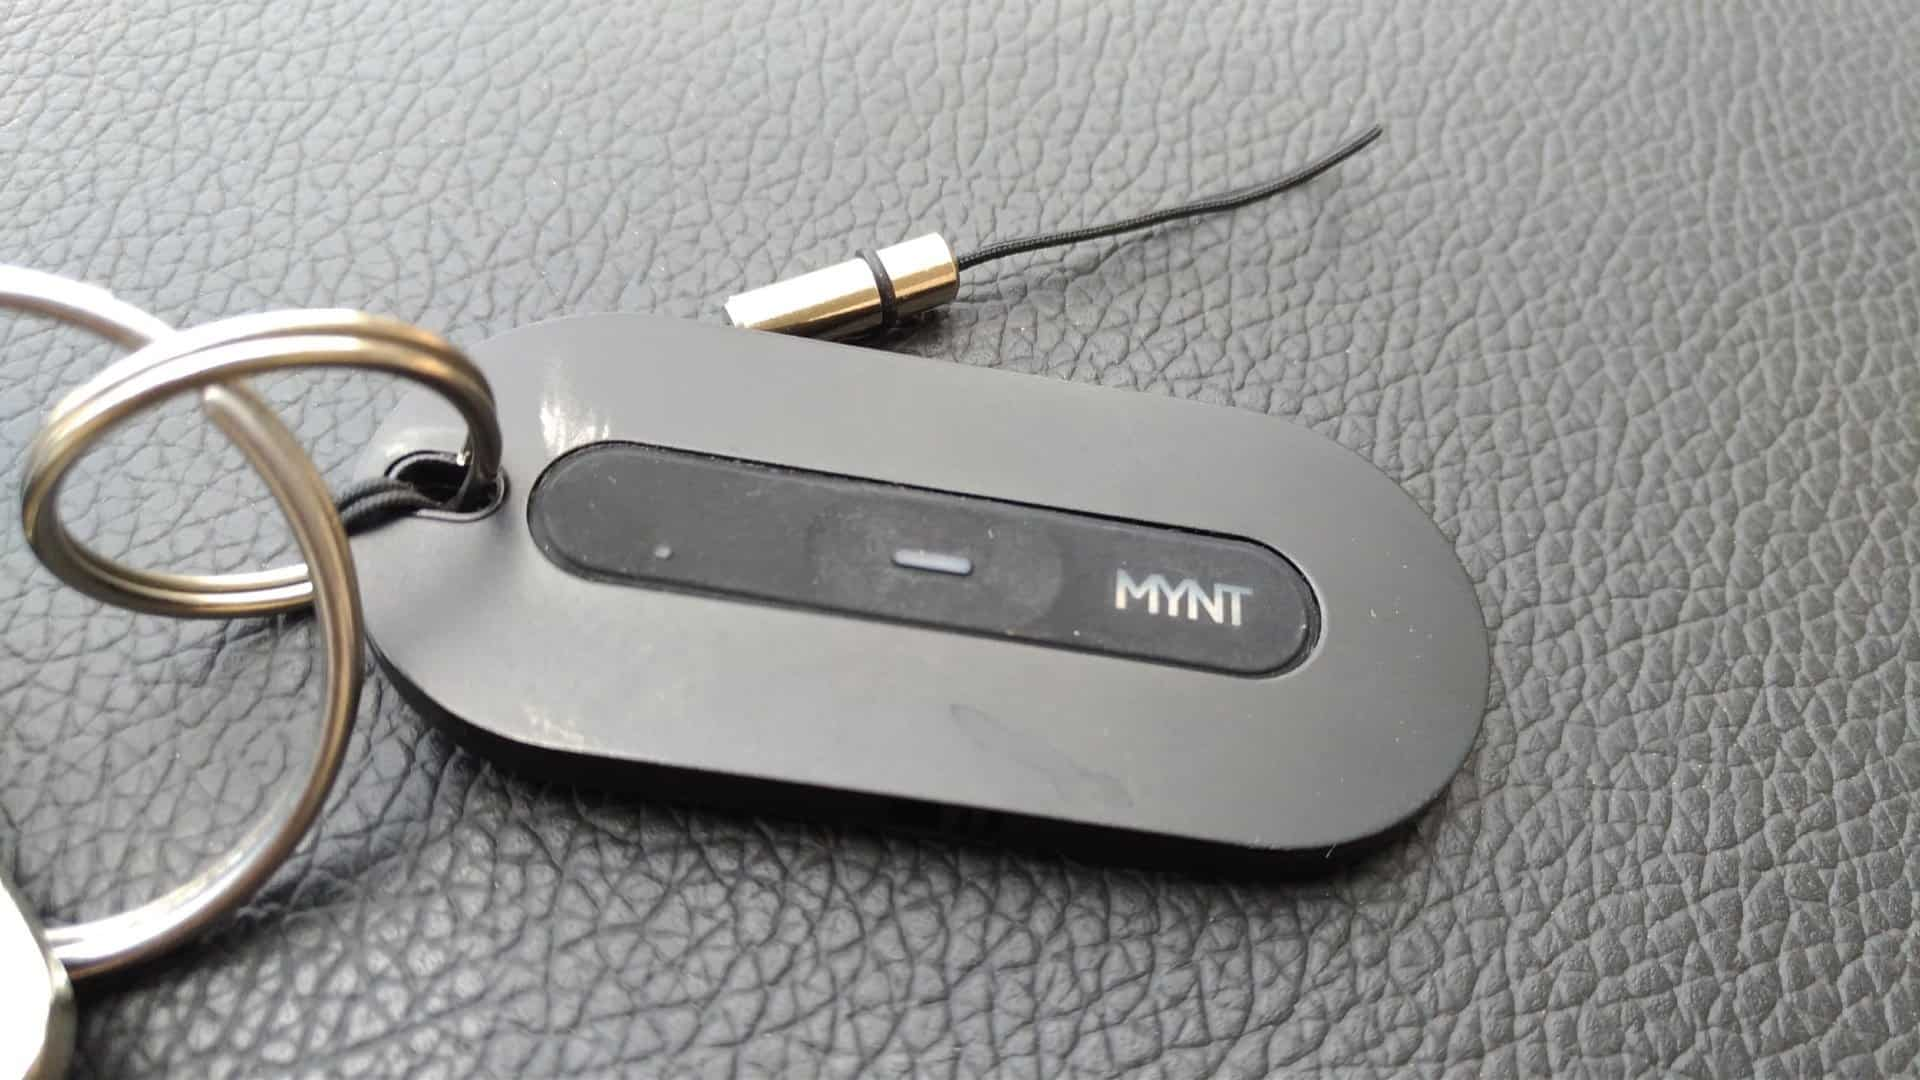 Mynt Smart Tracker & Key Finder Review - You'll Only Need This One Tiny Gadget To Track All your Belongings! - 2